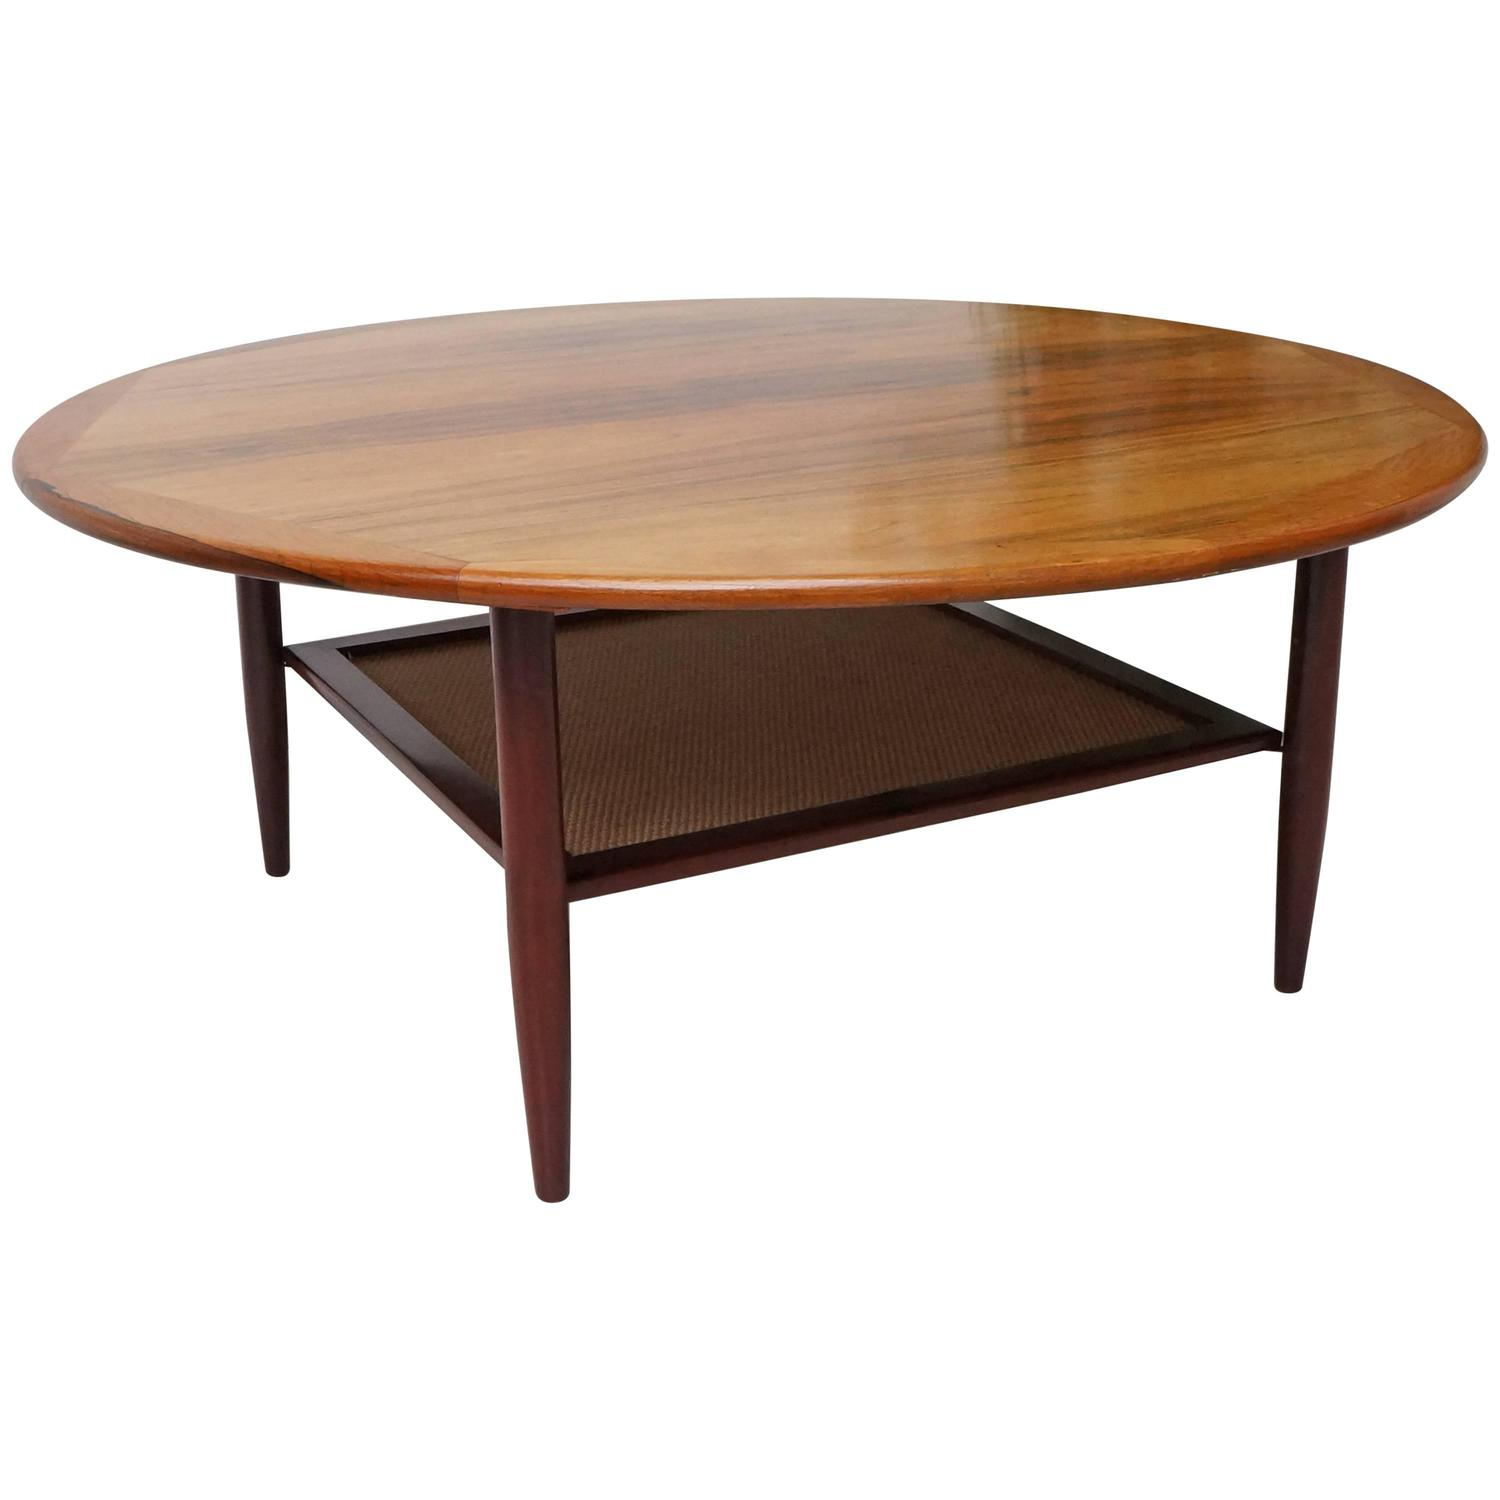 Large round wooden coffee table 1960s at 1stdibs Furniture coffee tables